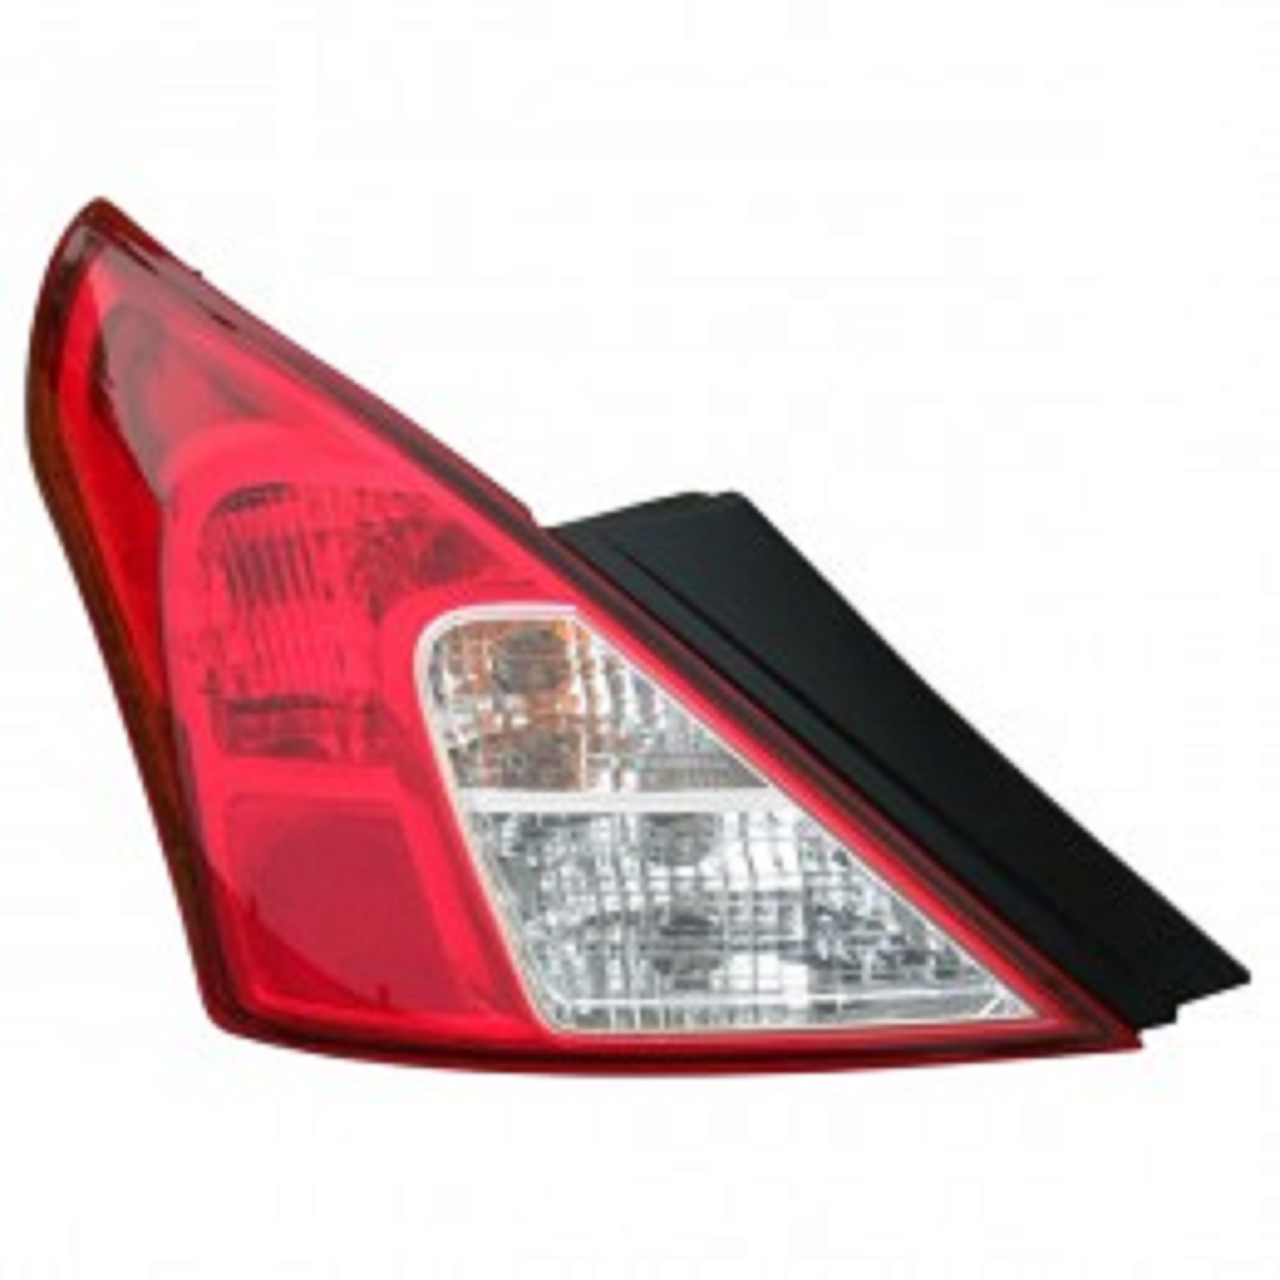 Nissan Versa sedan 2012 2013 2014 2015 tail light left driver